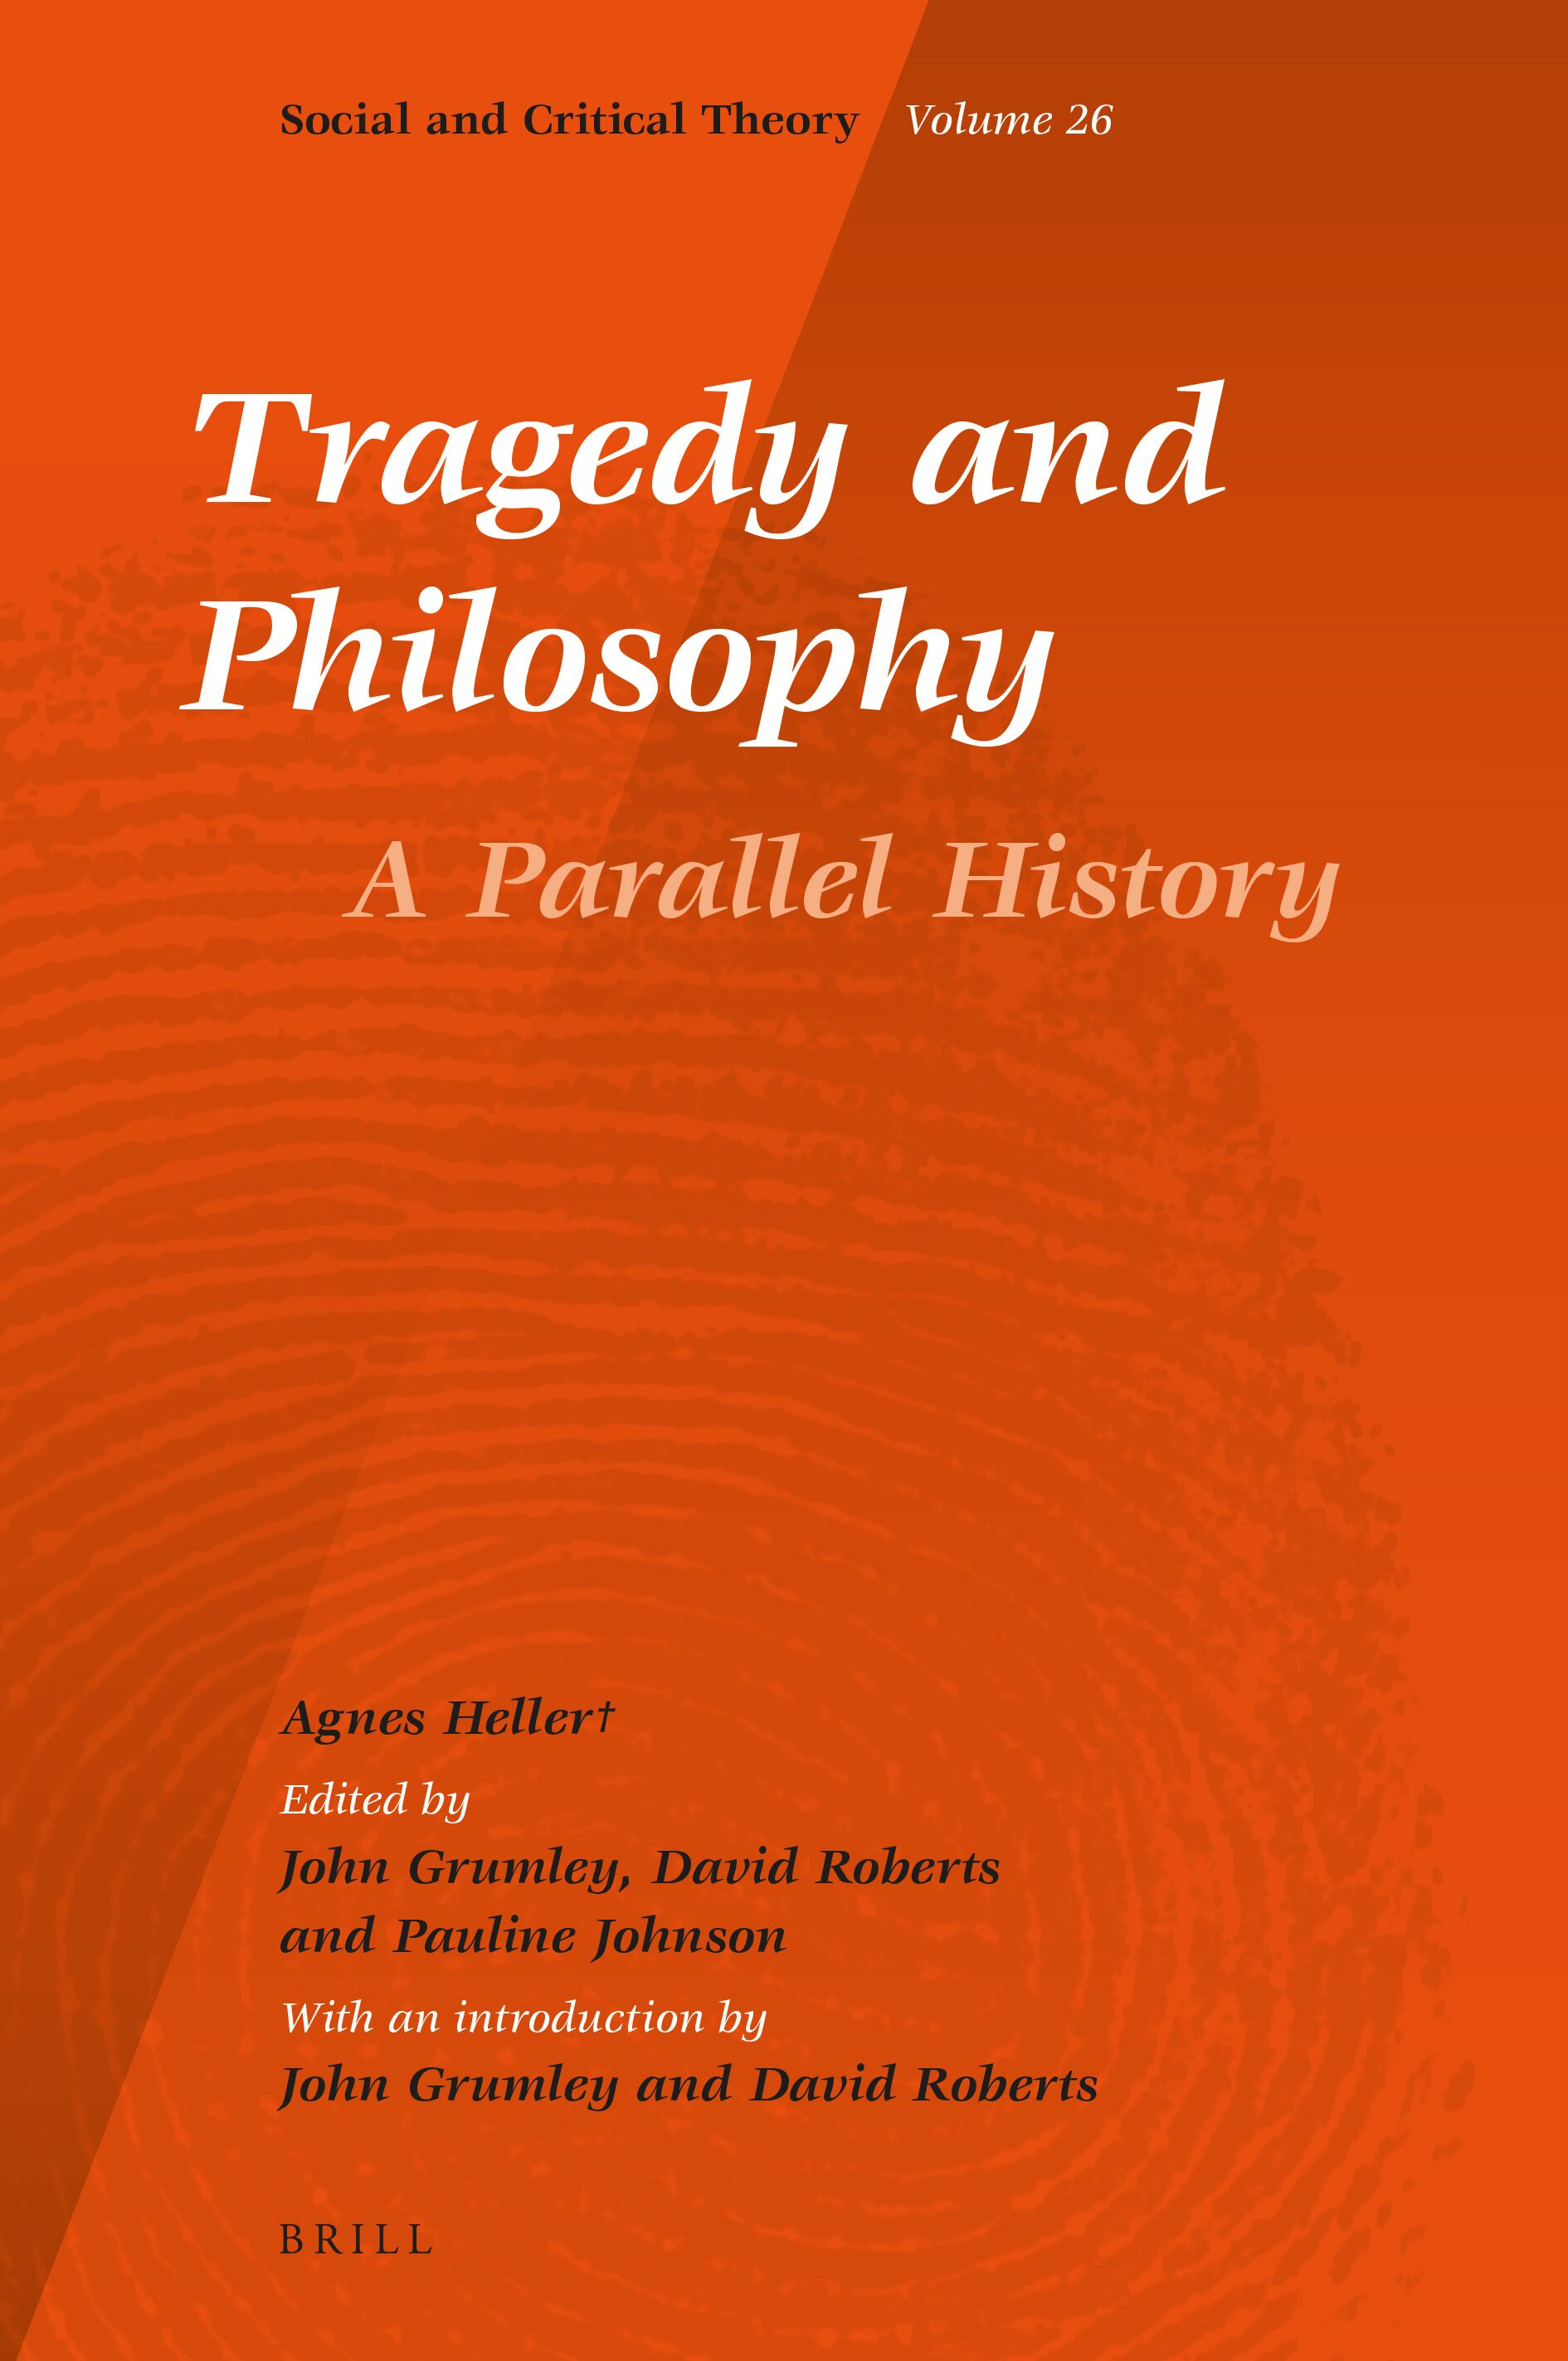 Part 20 Drama and Philosophy in Tragedy and Philosophy. A Parallel ...